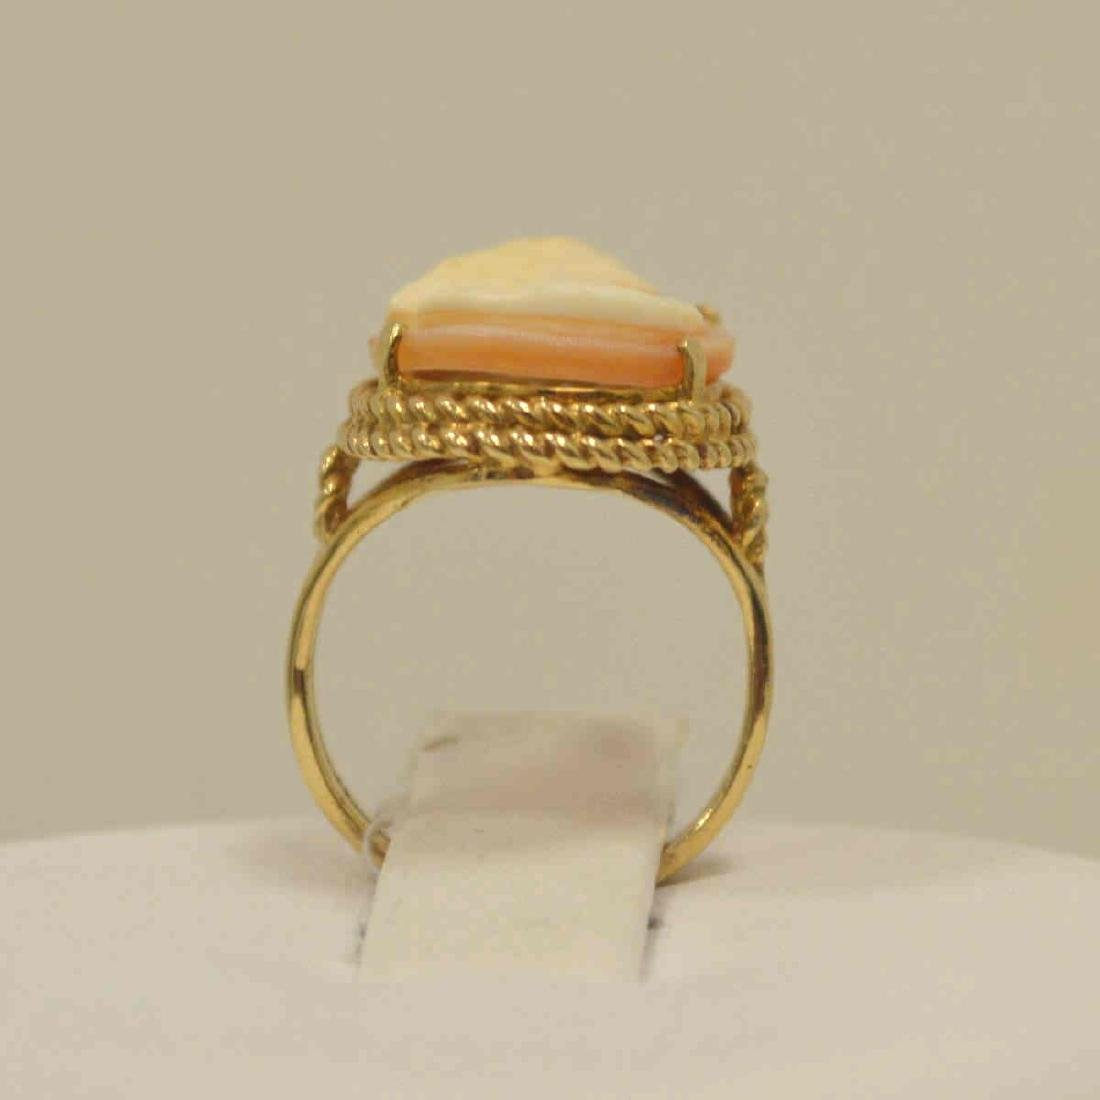 10kt yellow gold cameo ring - 3